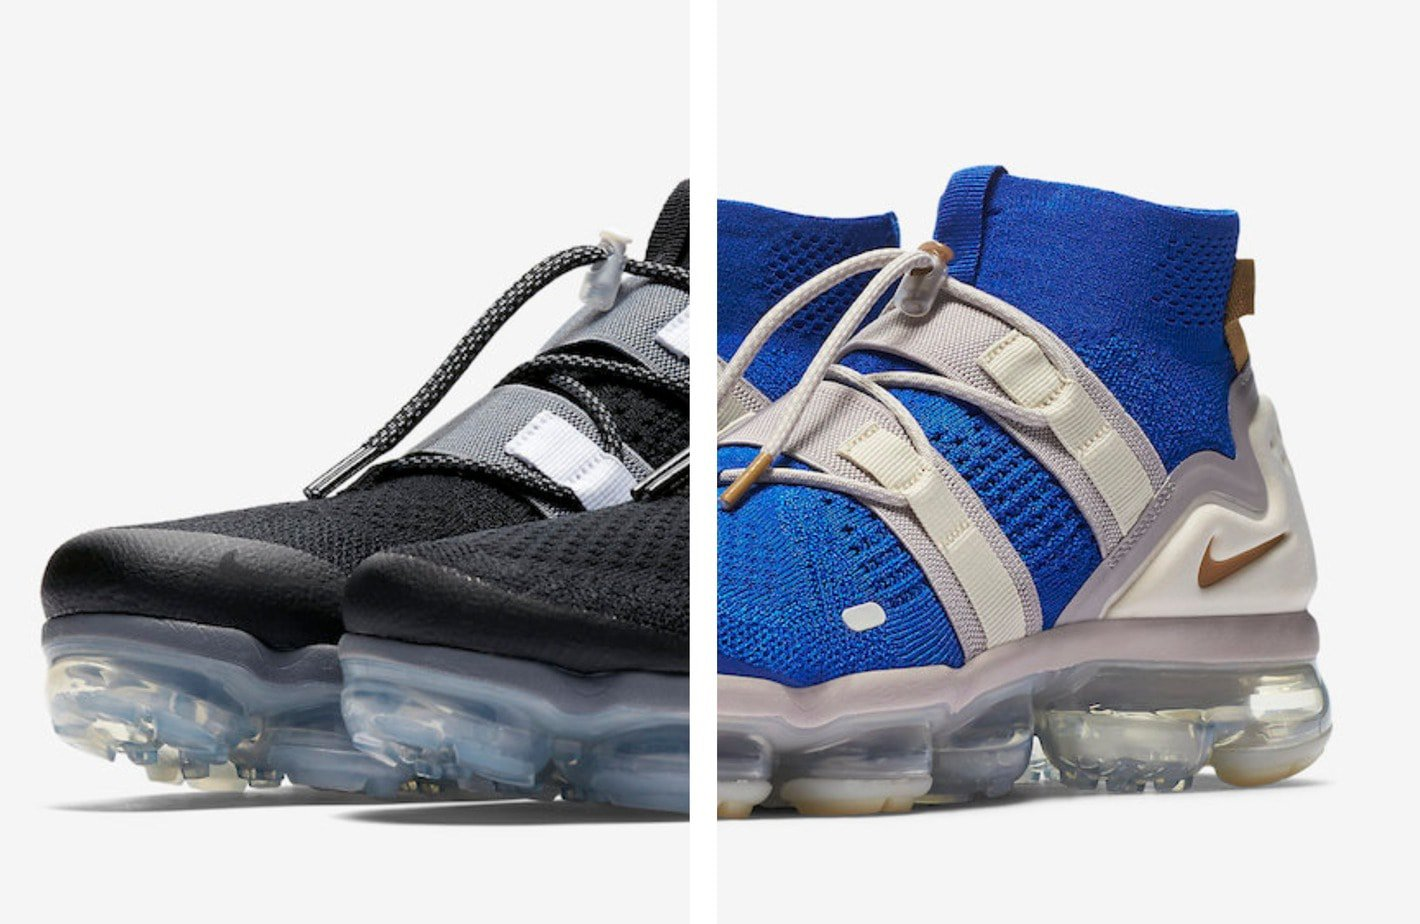 b2073b10cde4 Nike s Air Vapormax Flyknit Utility is Launching in Two Hot New Colorways  This August